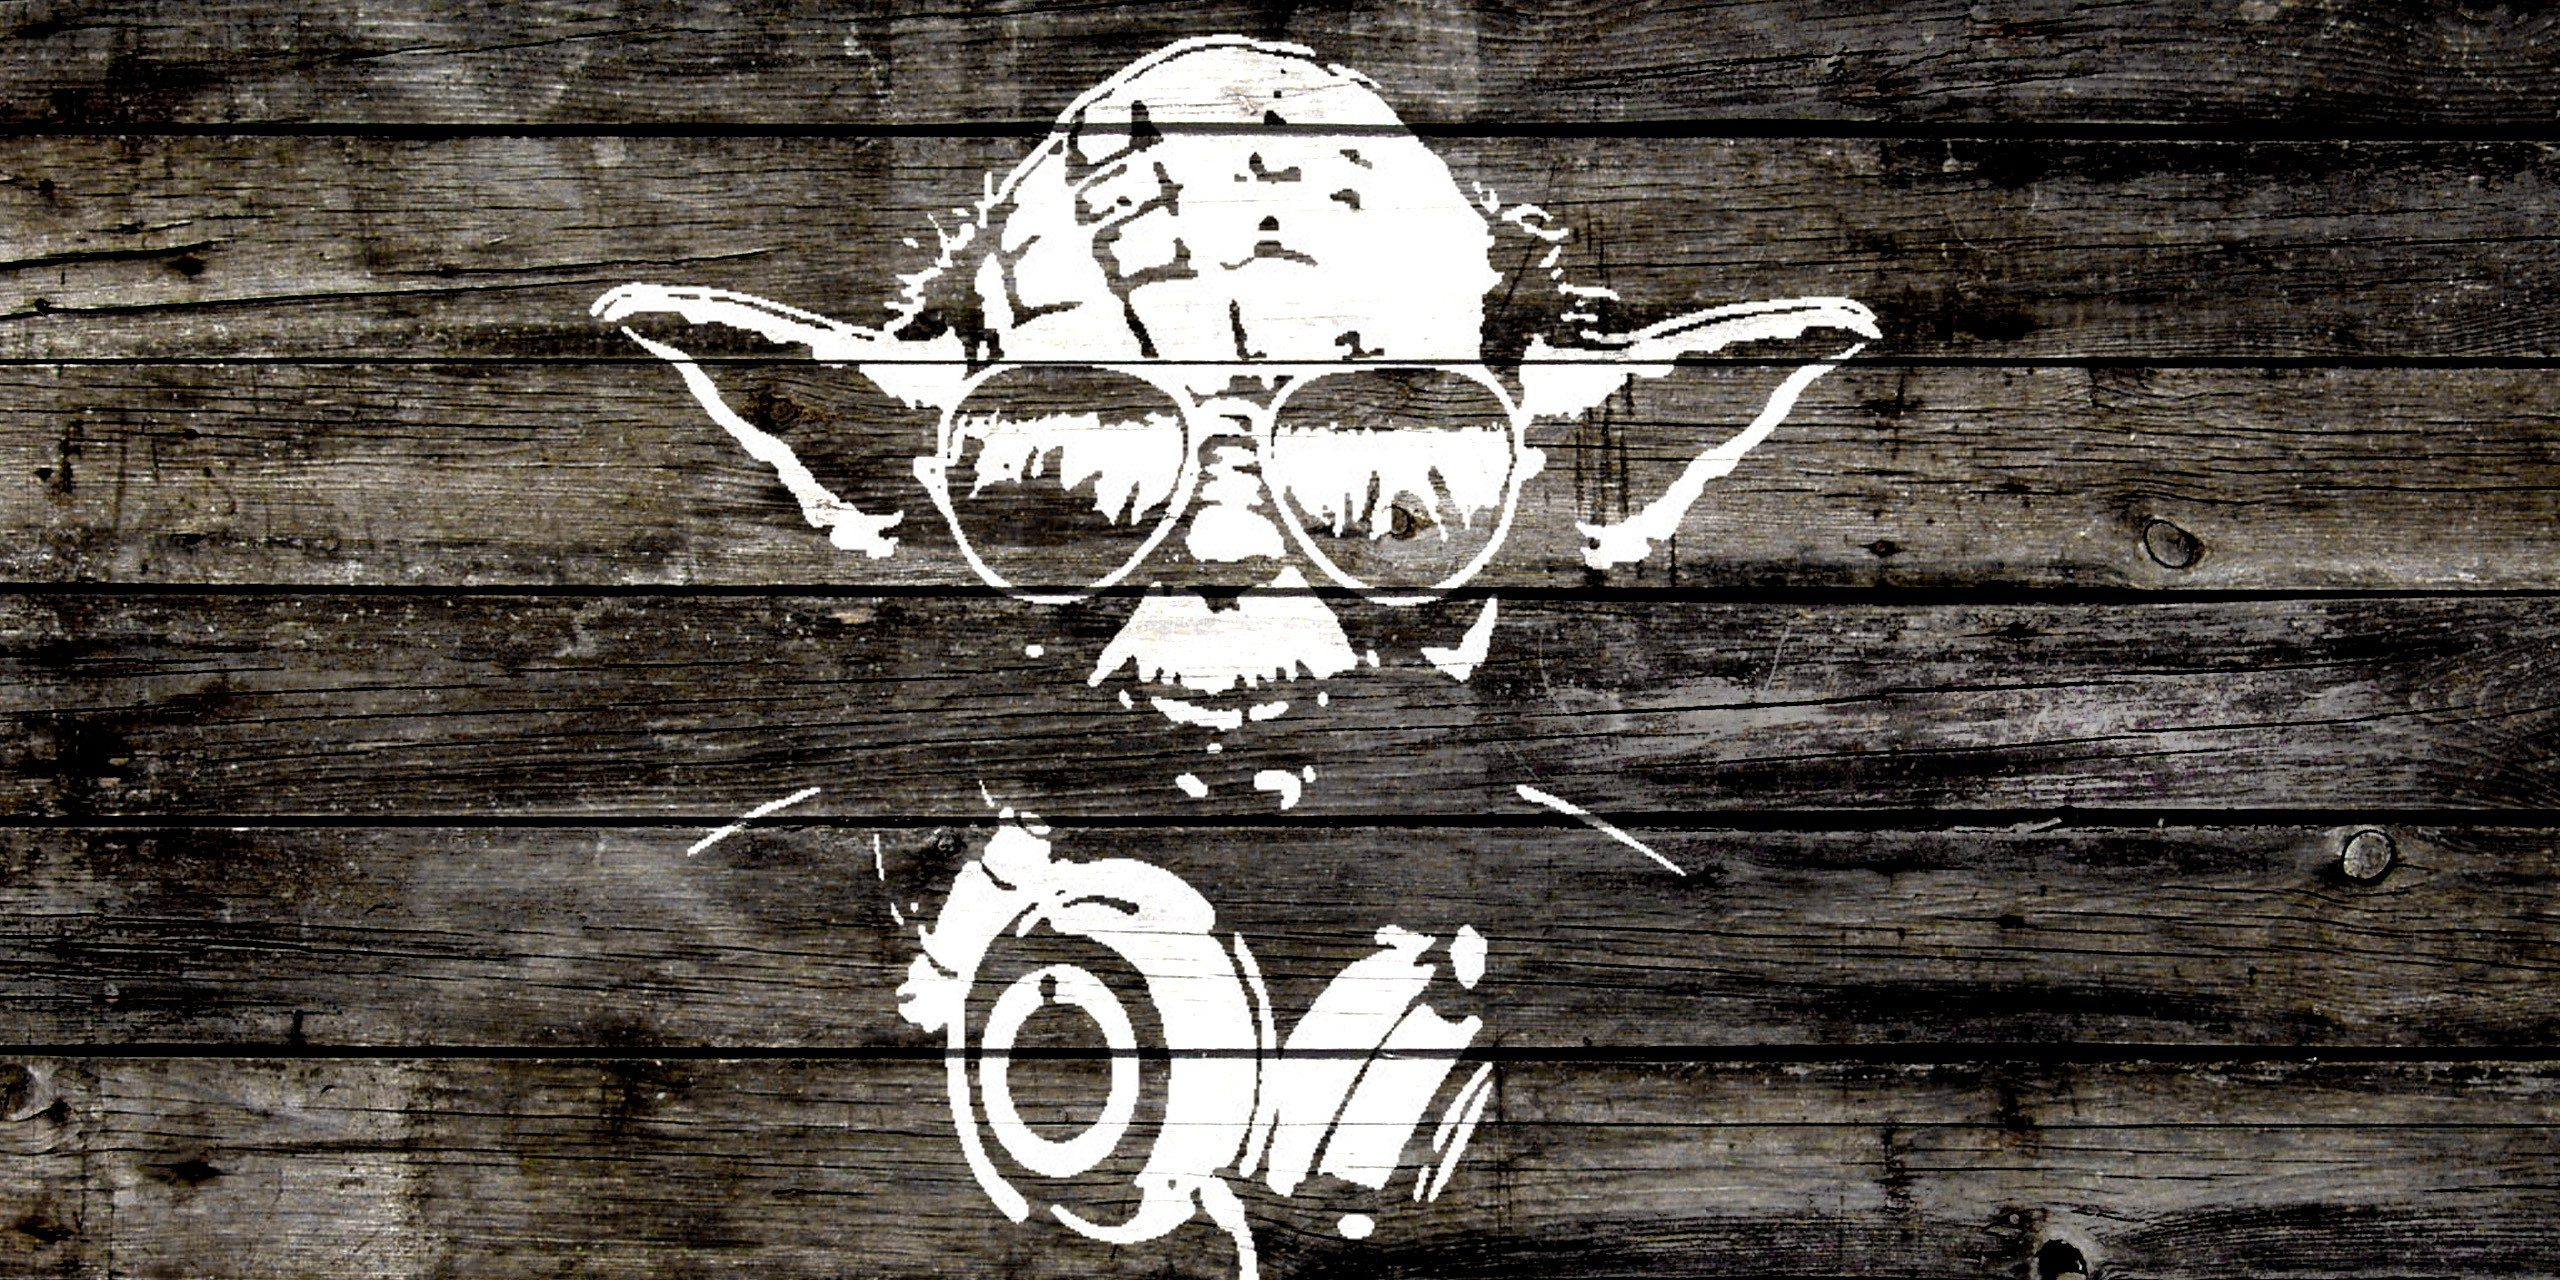 [LISTEN]: The Zone's Mixtape :: May The 4th Be With You Edition